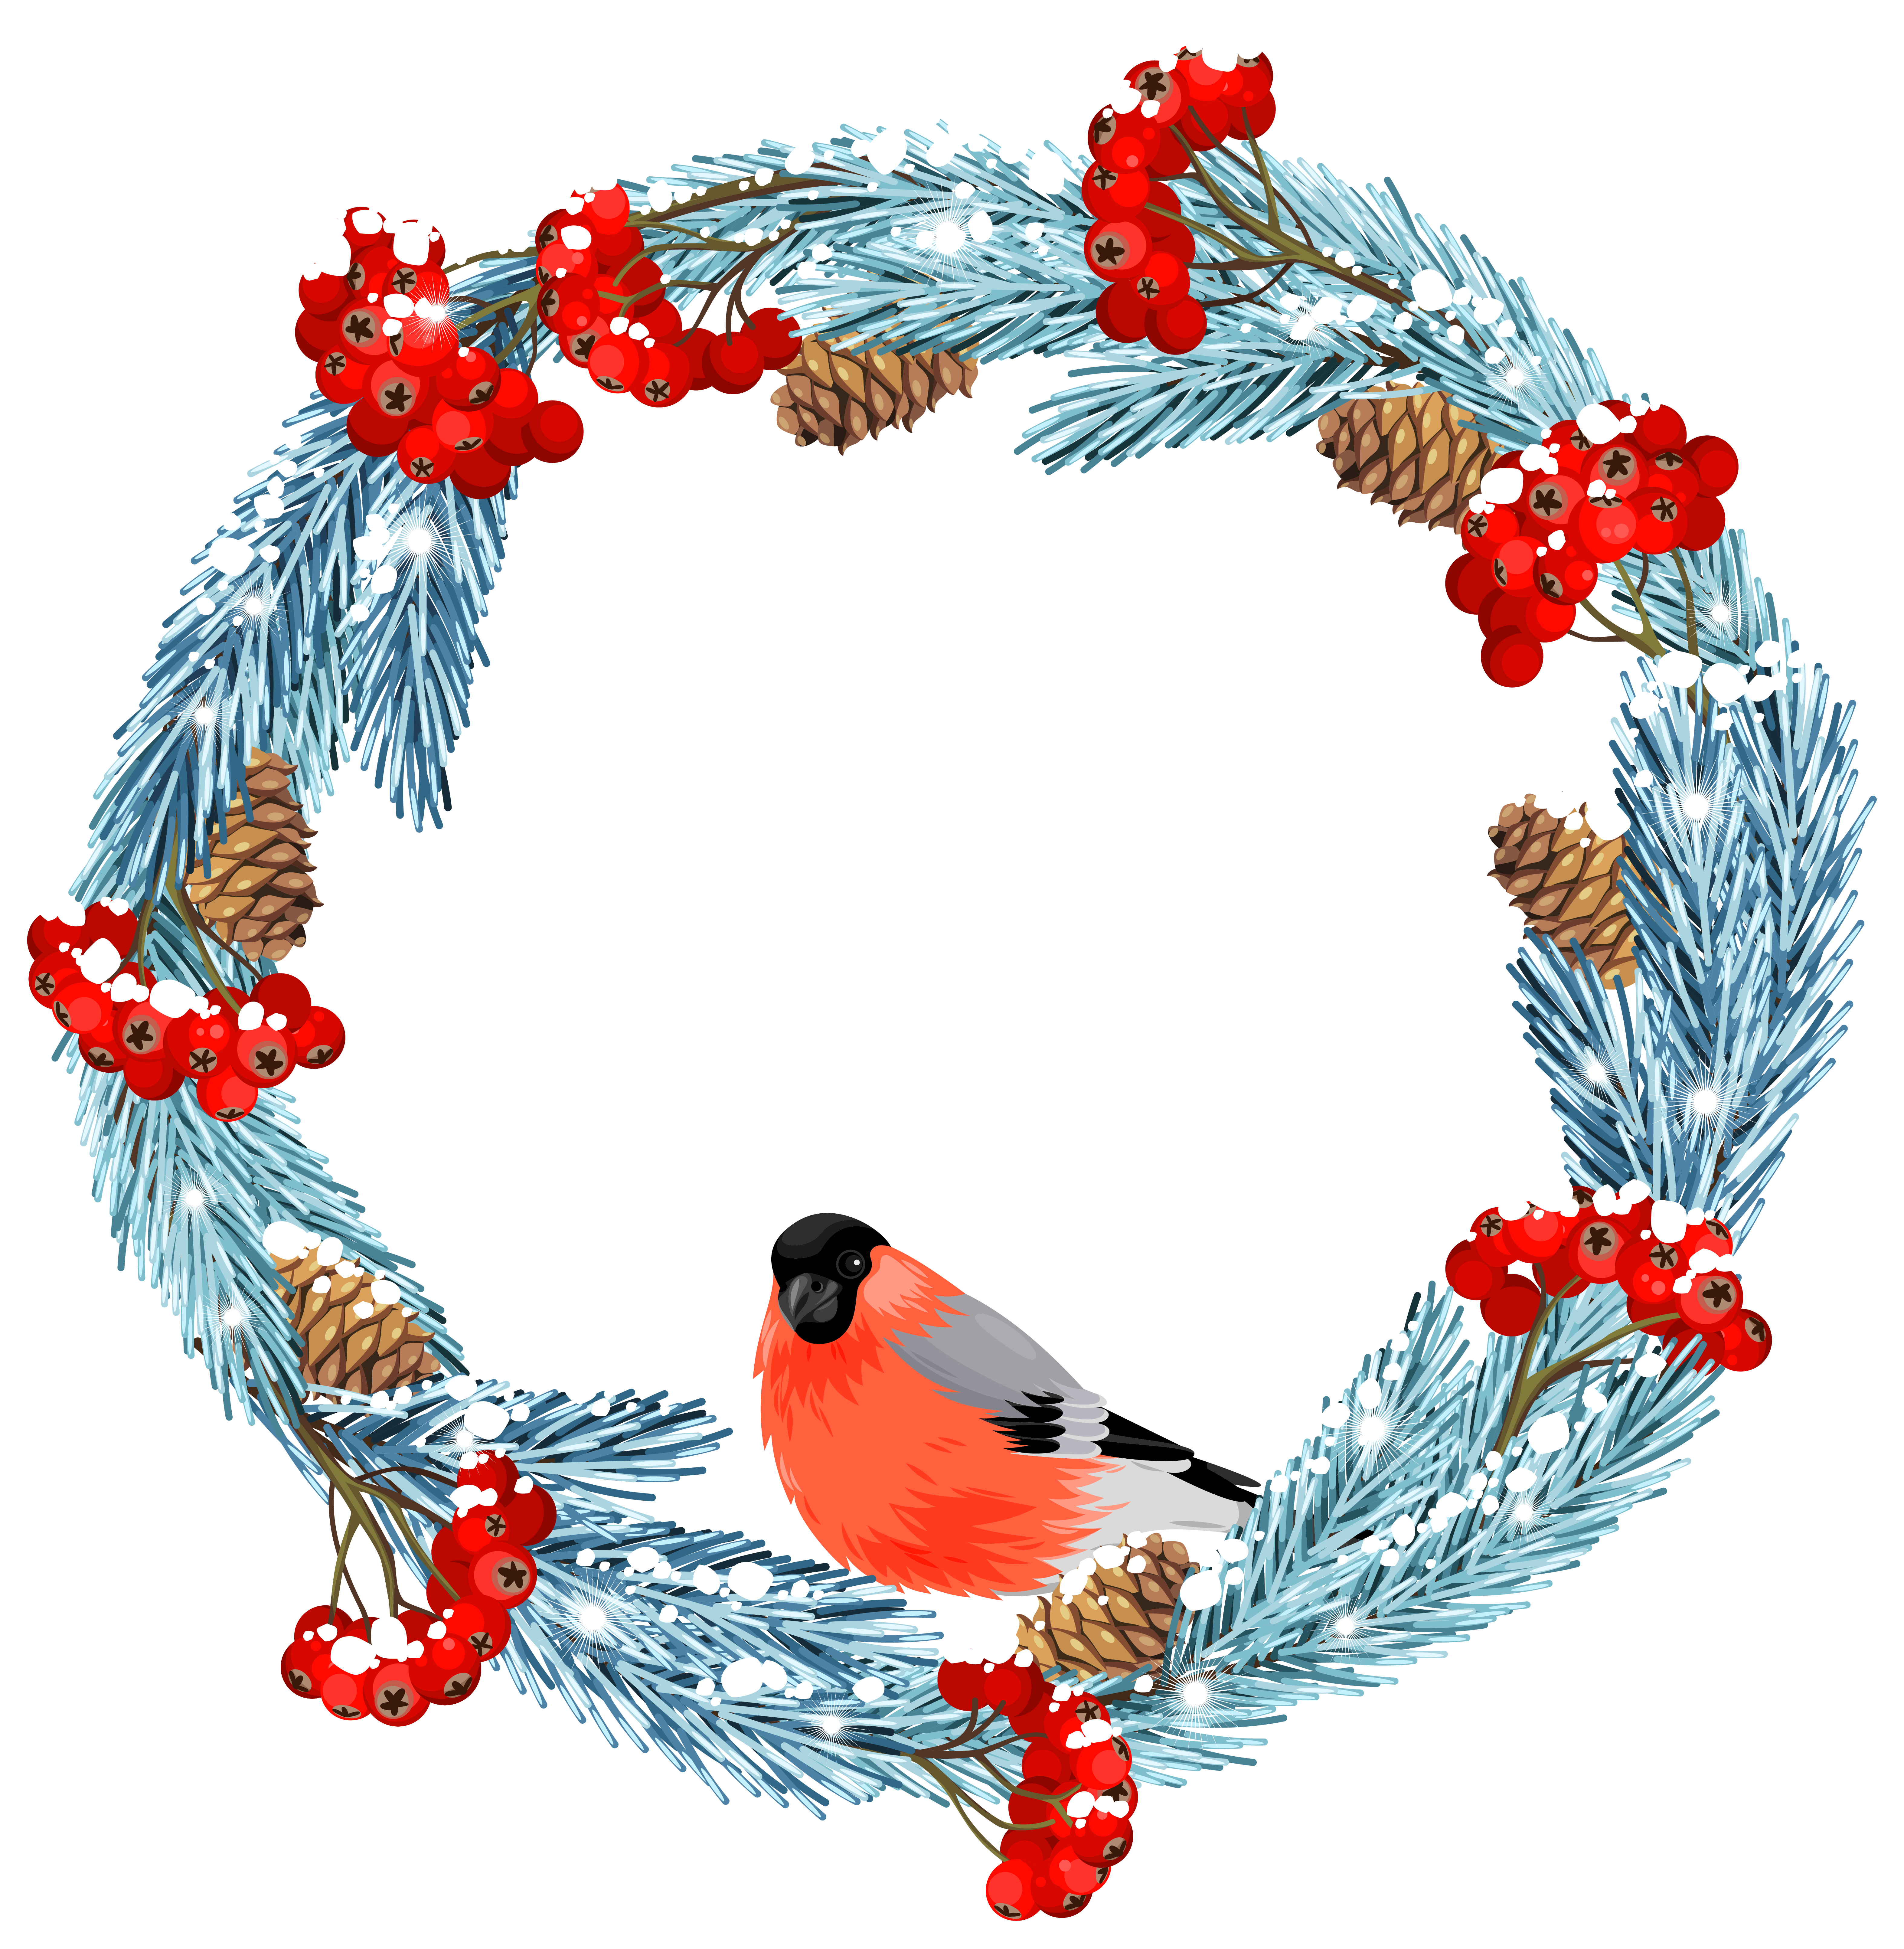 png transparent download Snowboard clipart printable. Blue winter wreath with